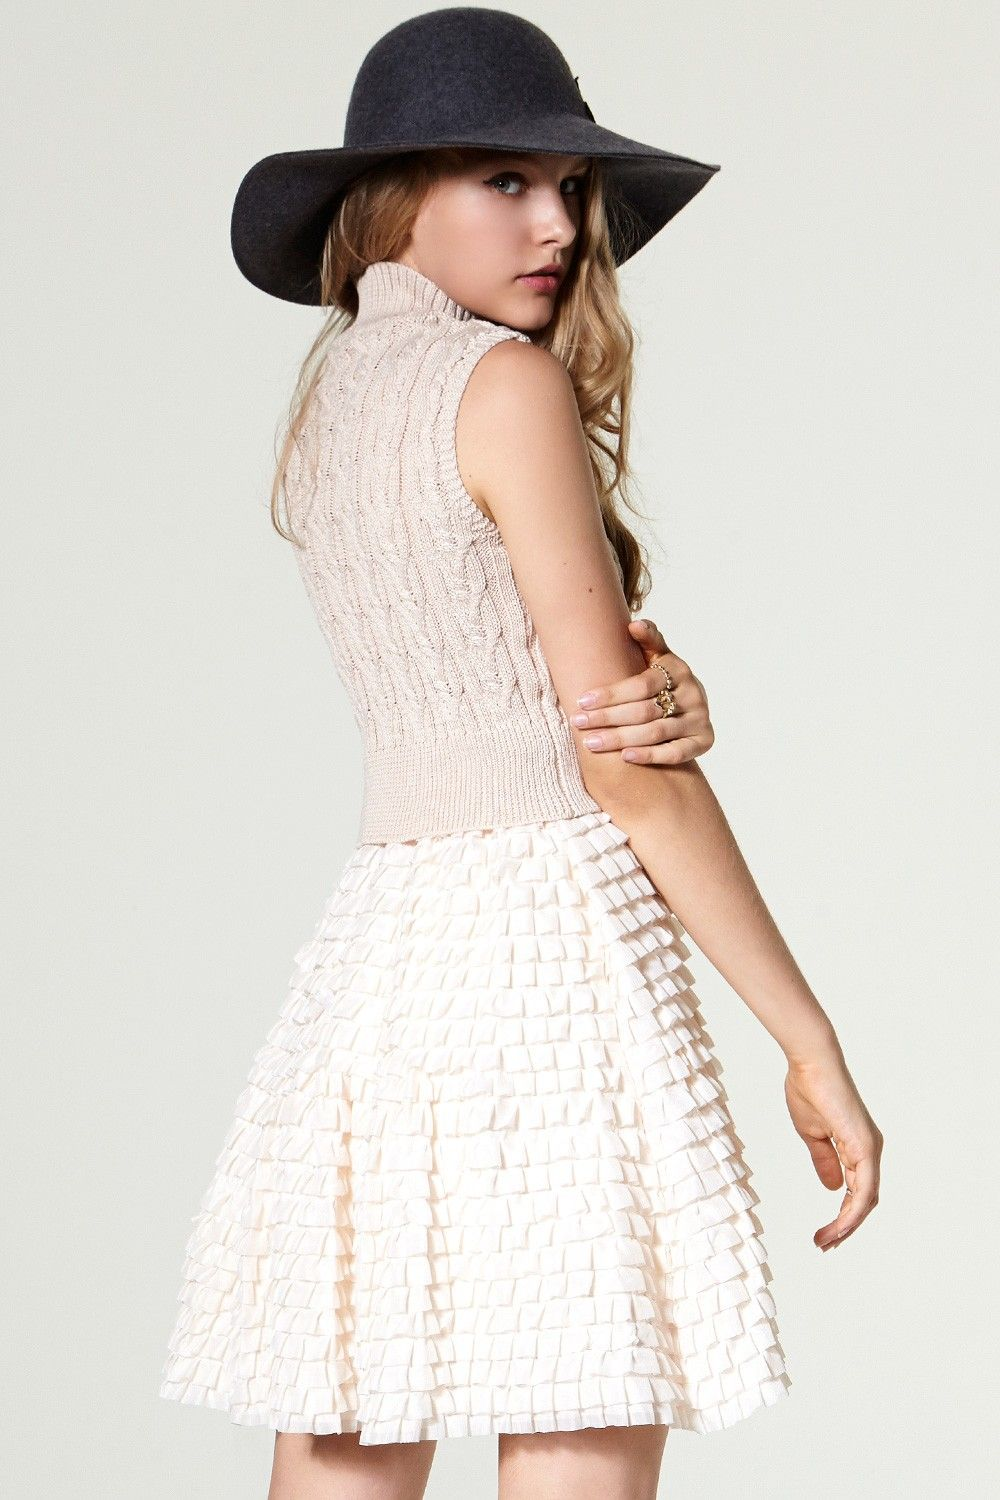 Lace dress jacket  Inas High Neck Cancan Dress Discover the latest fashion trends